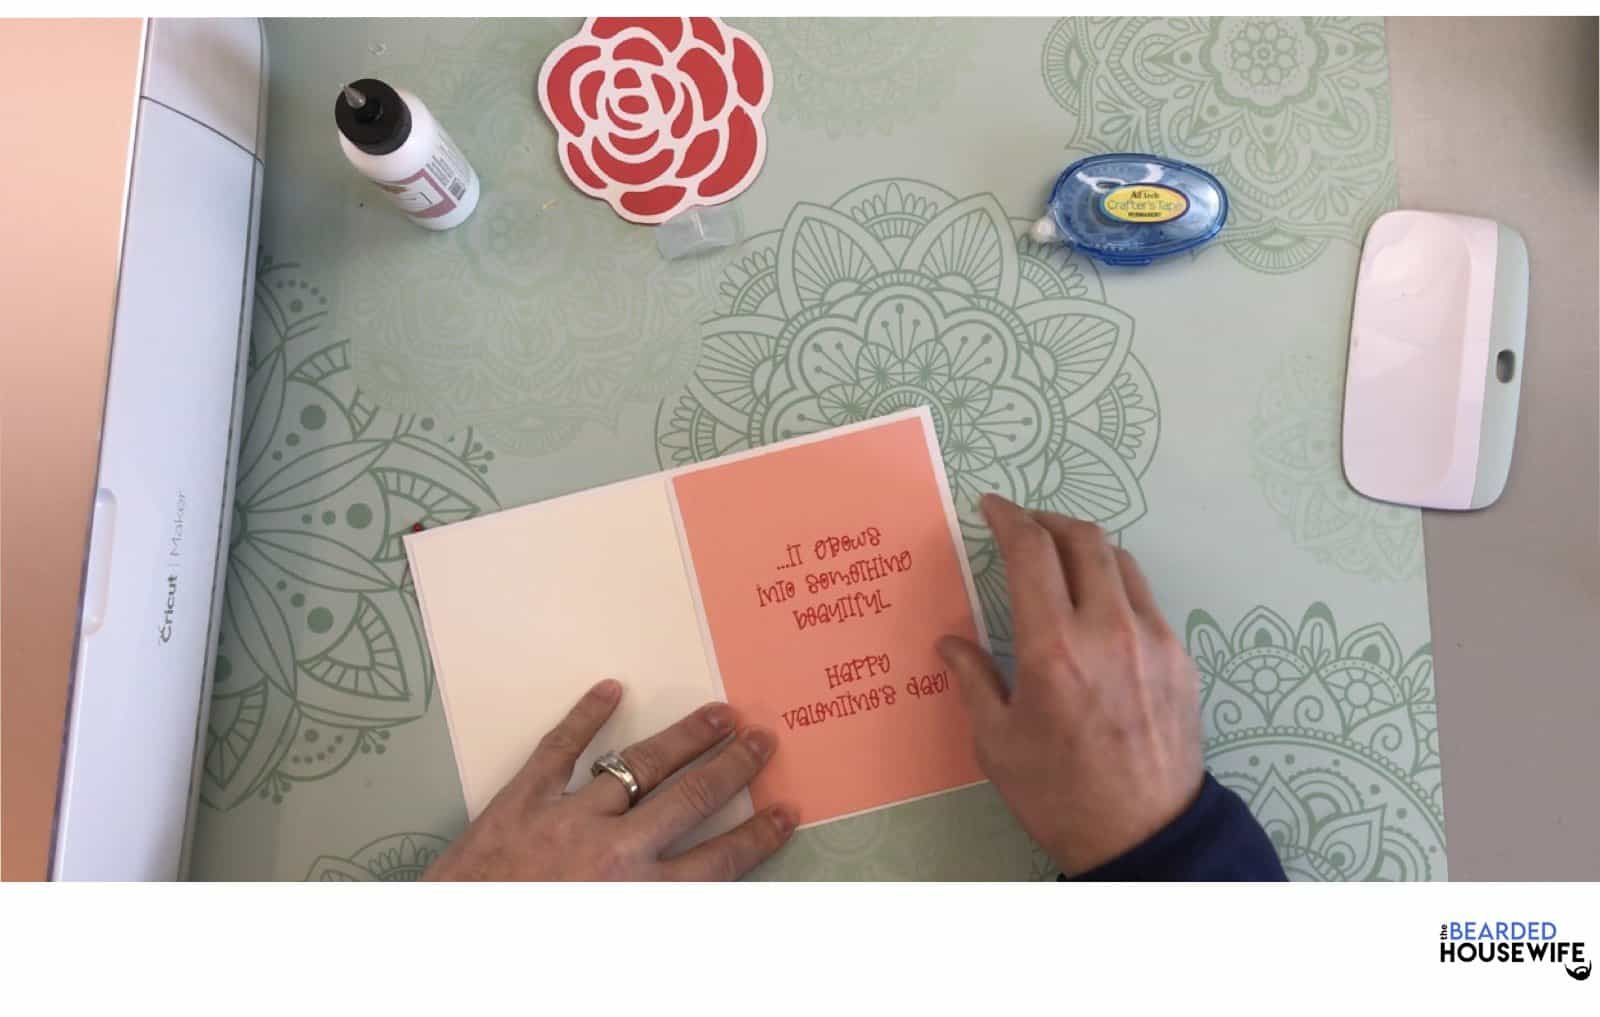 add to the inside of the card, centering the image